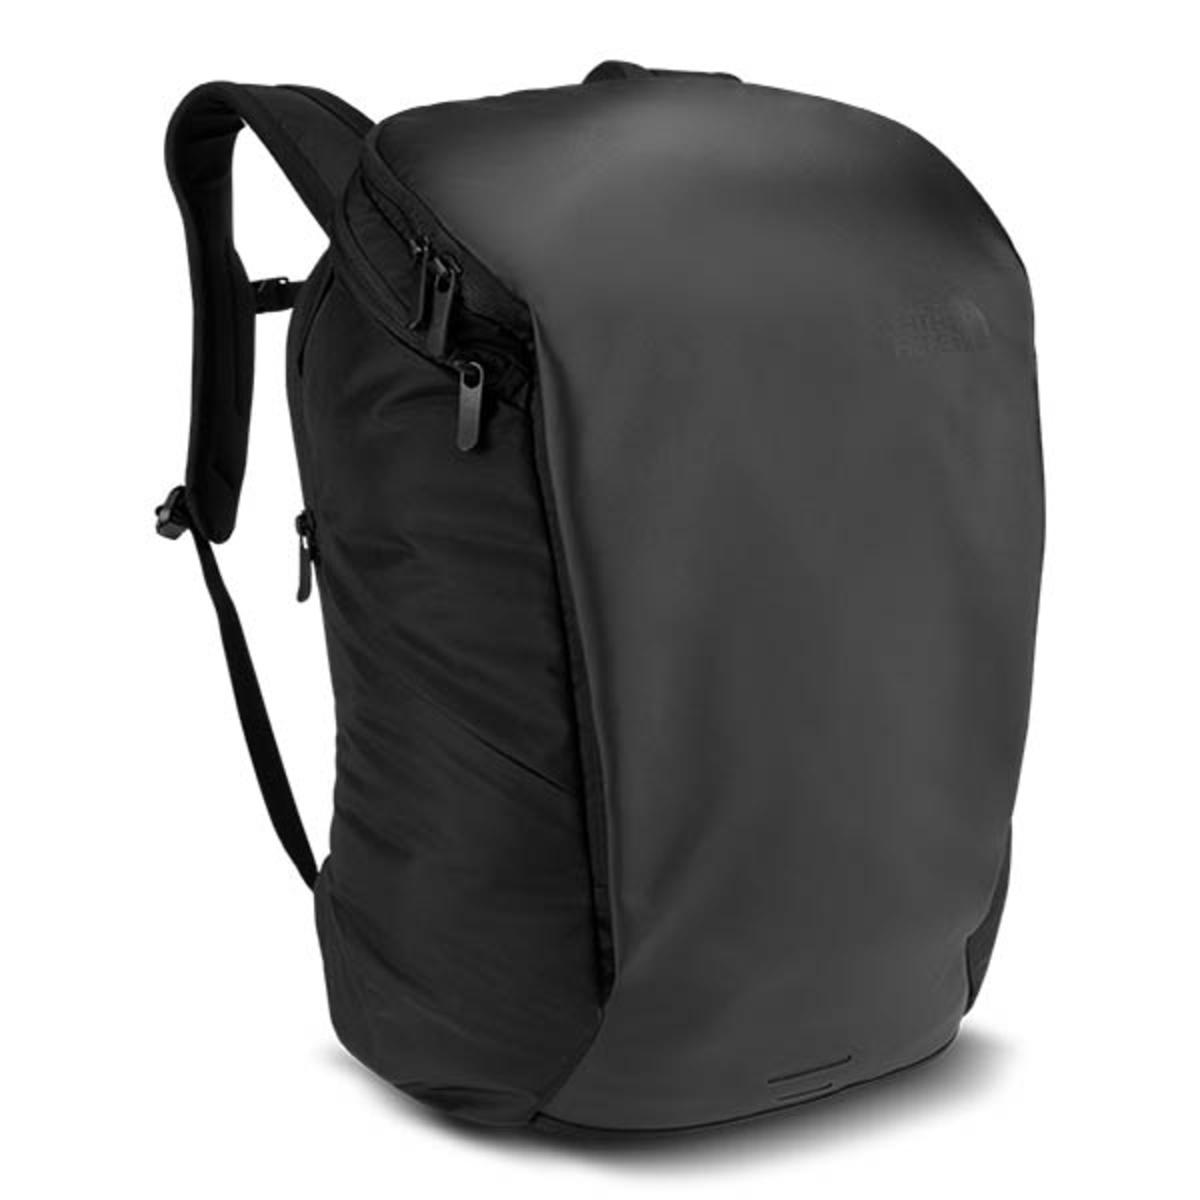 8ec5cdb98 The North Face Kaban Backpack Bag - The Warming Store